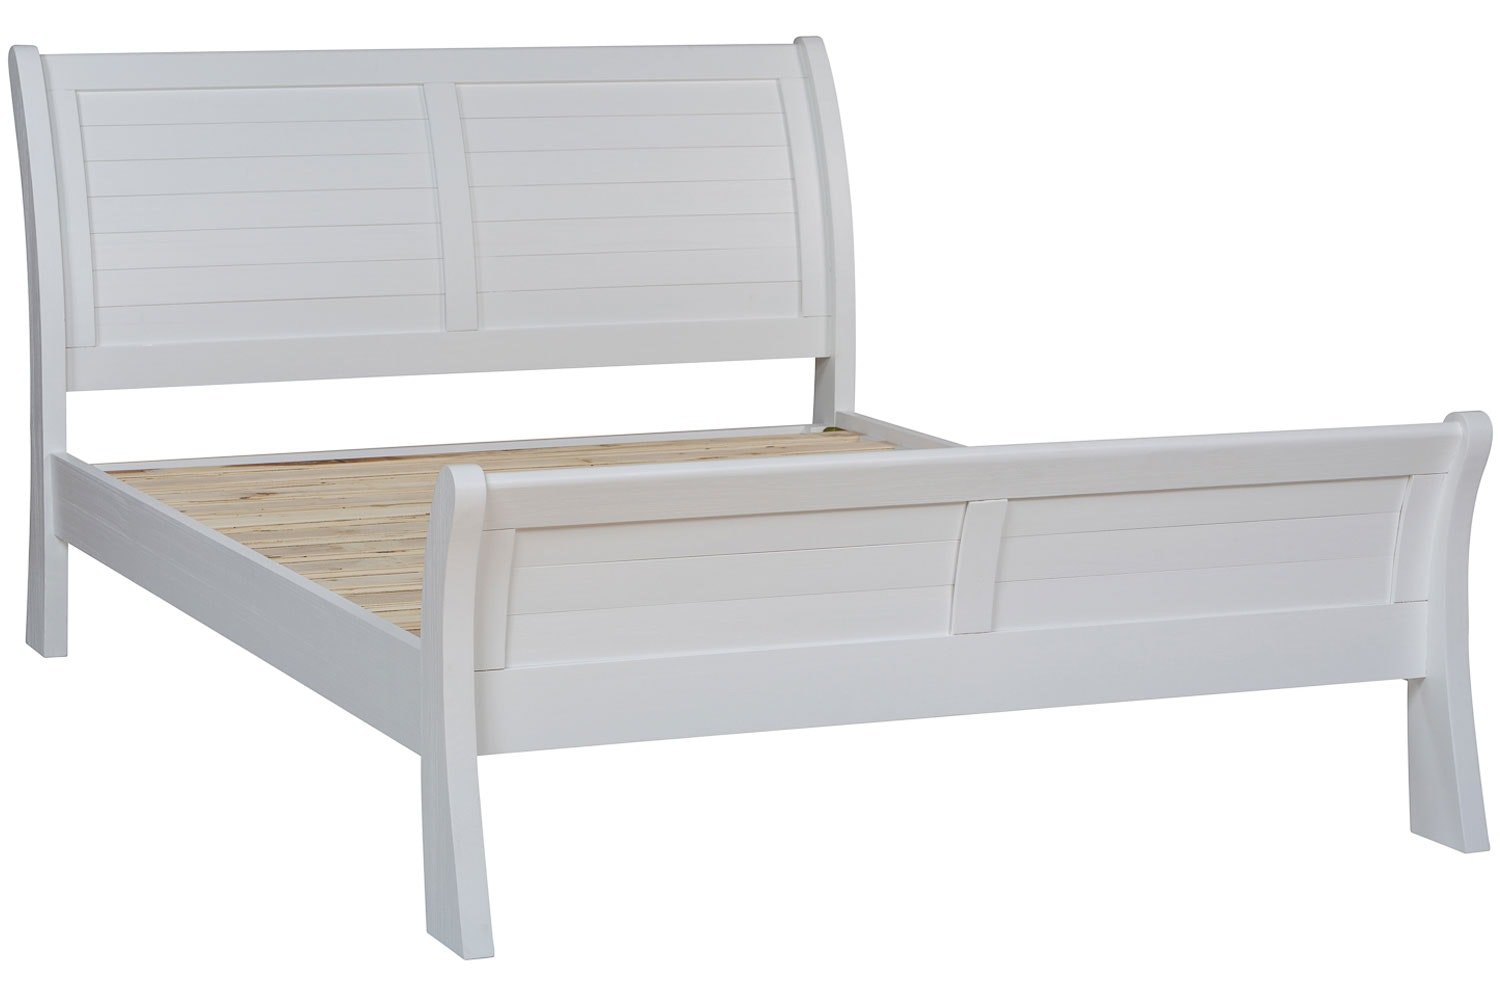 Gemstone Double Bed Frame | 4ft6 | White